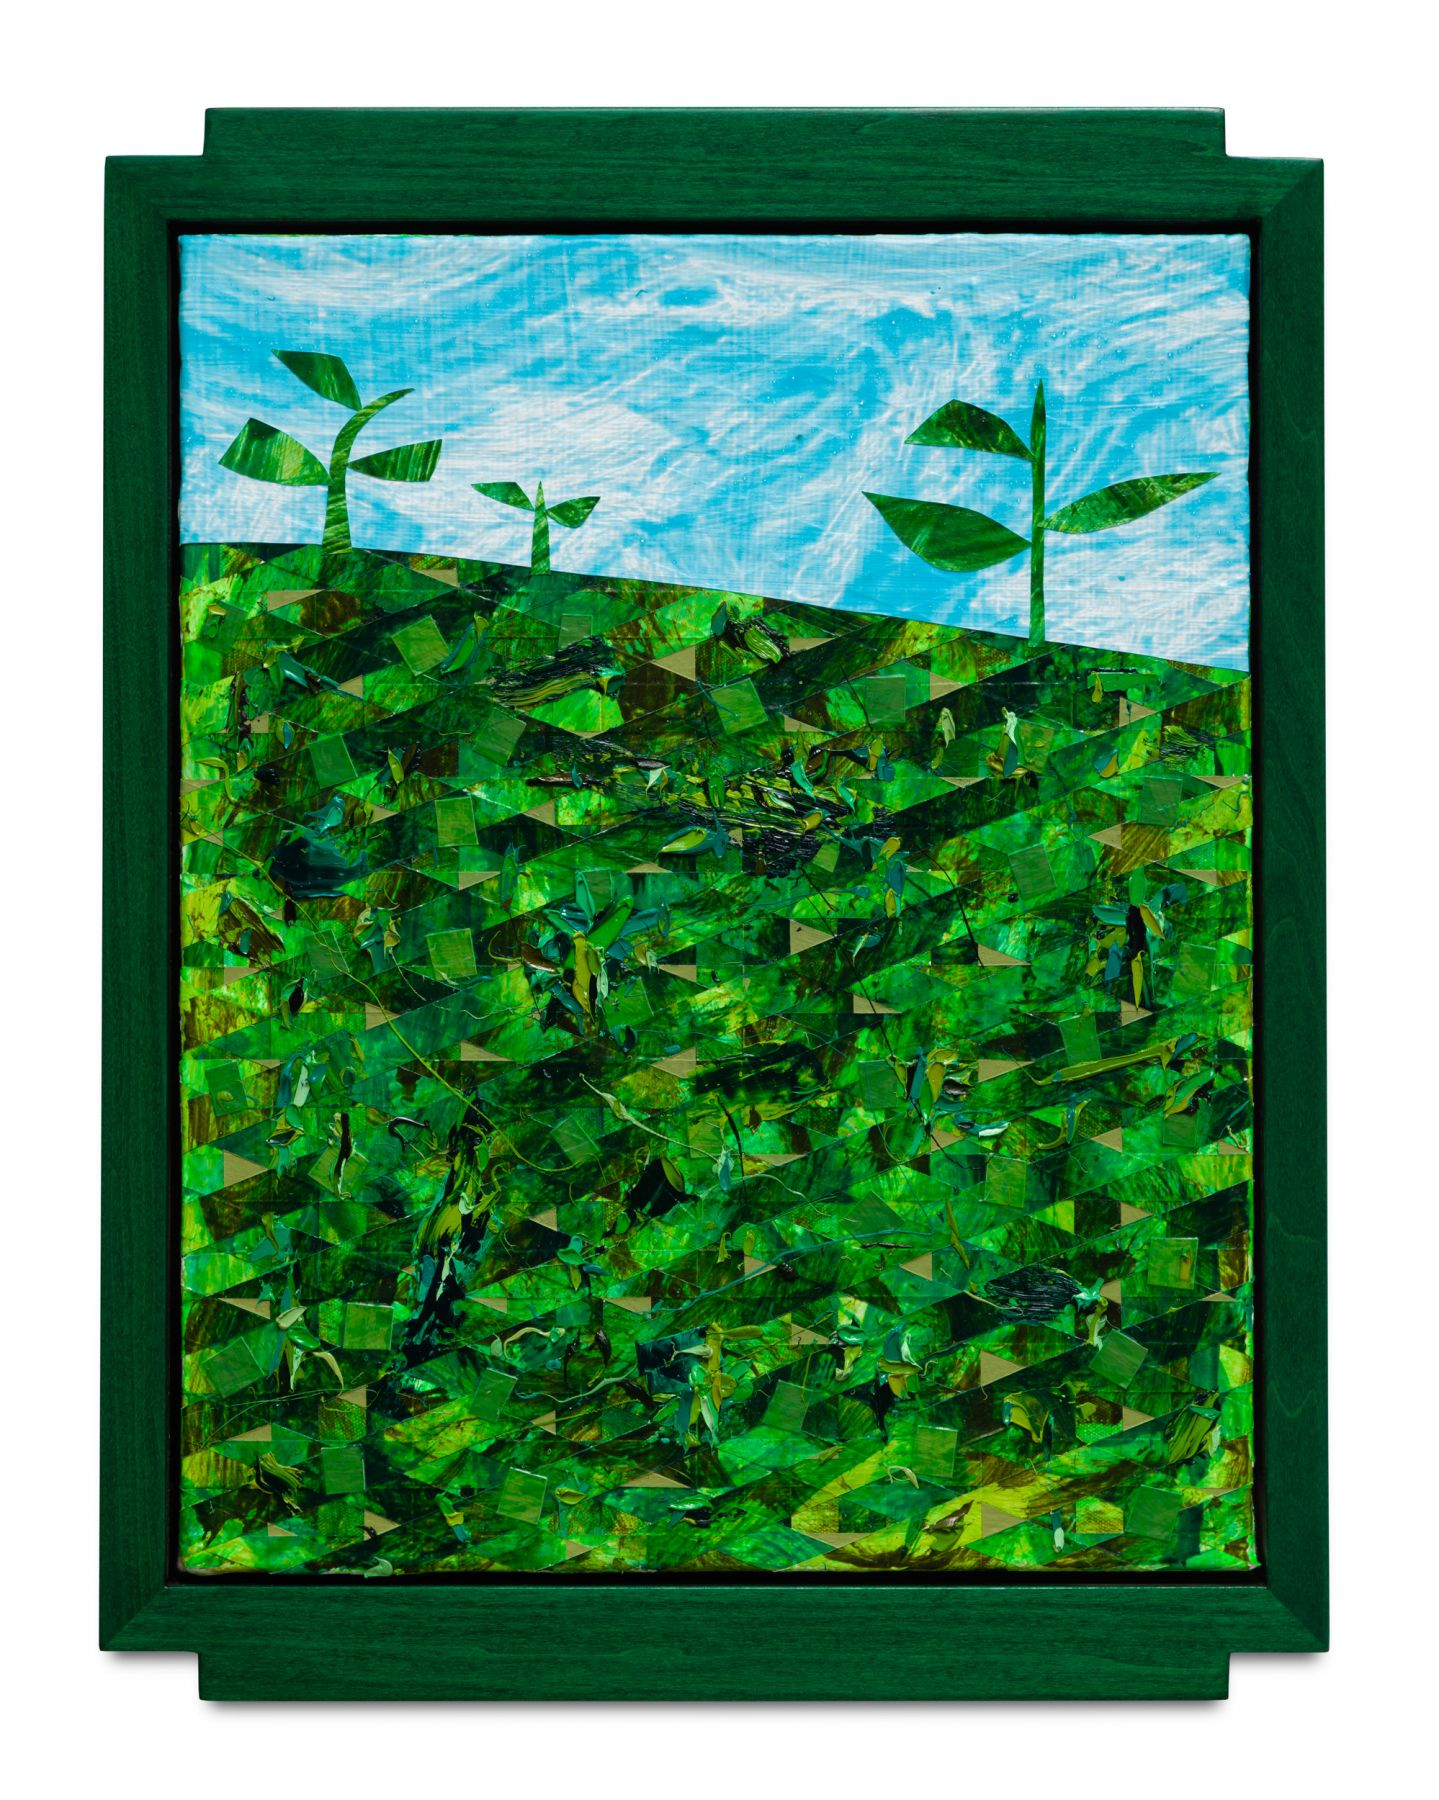 Weeds #2, 2017 Oil and acrylic on canvas with painted artist frame